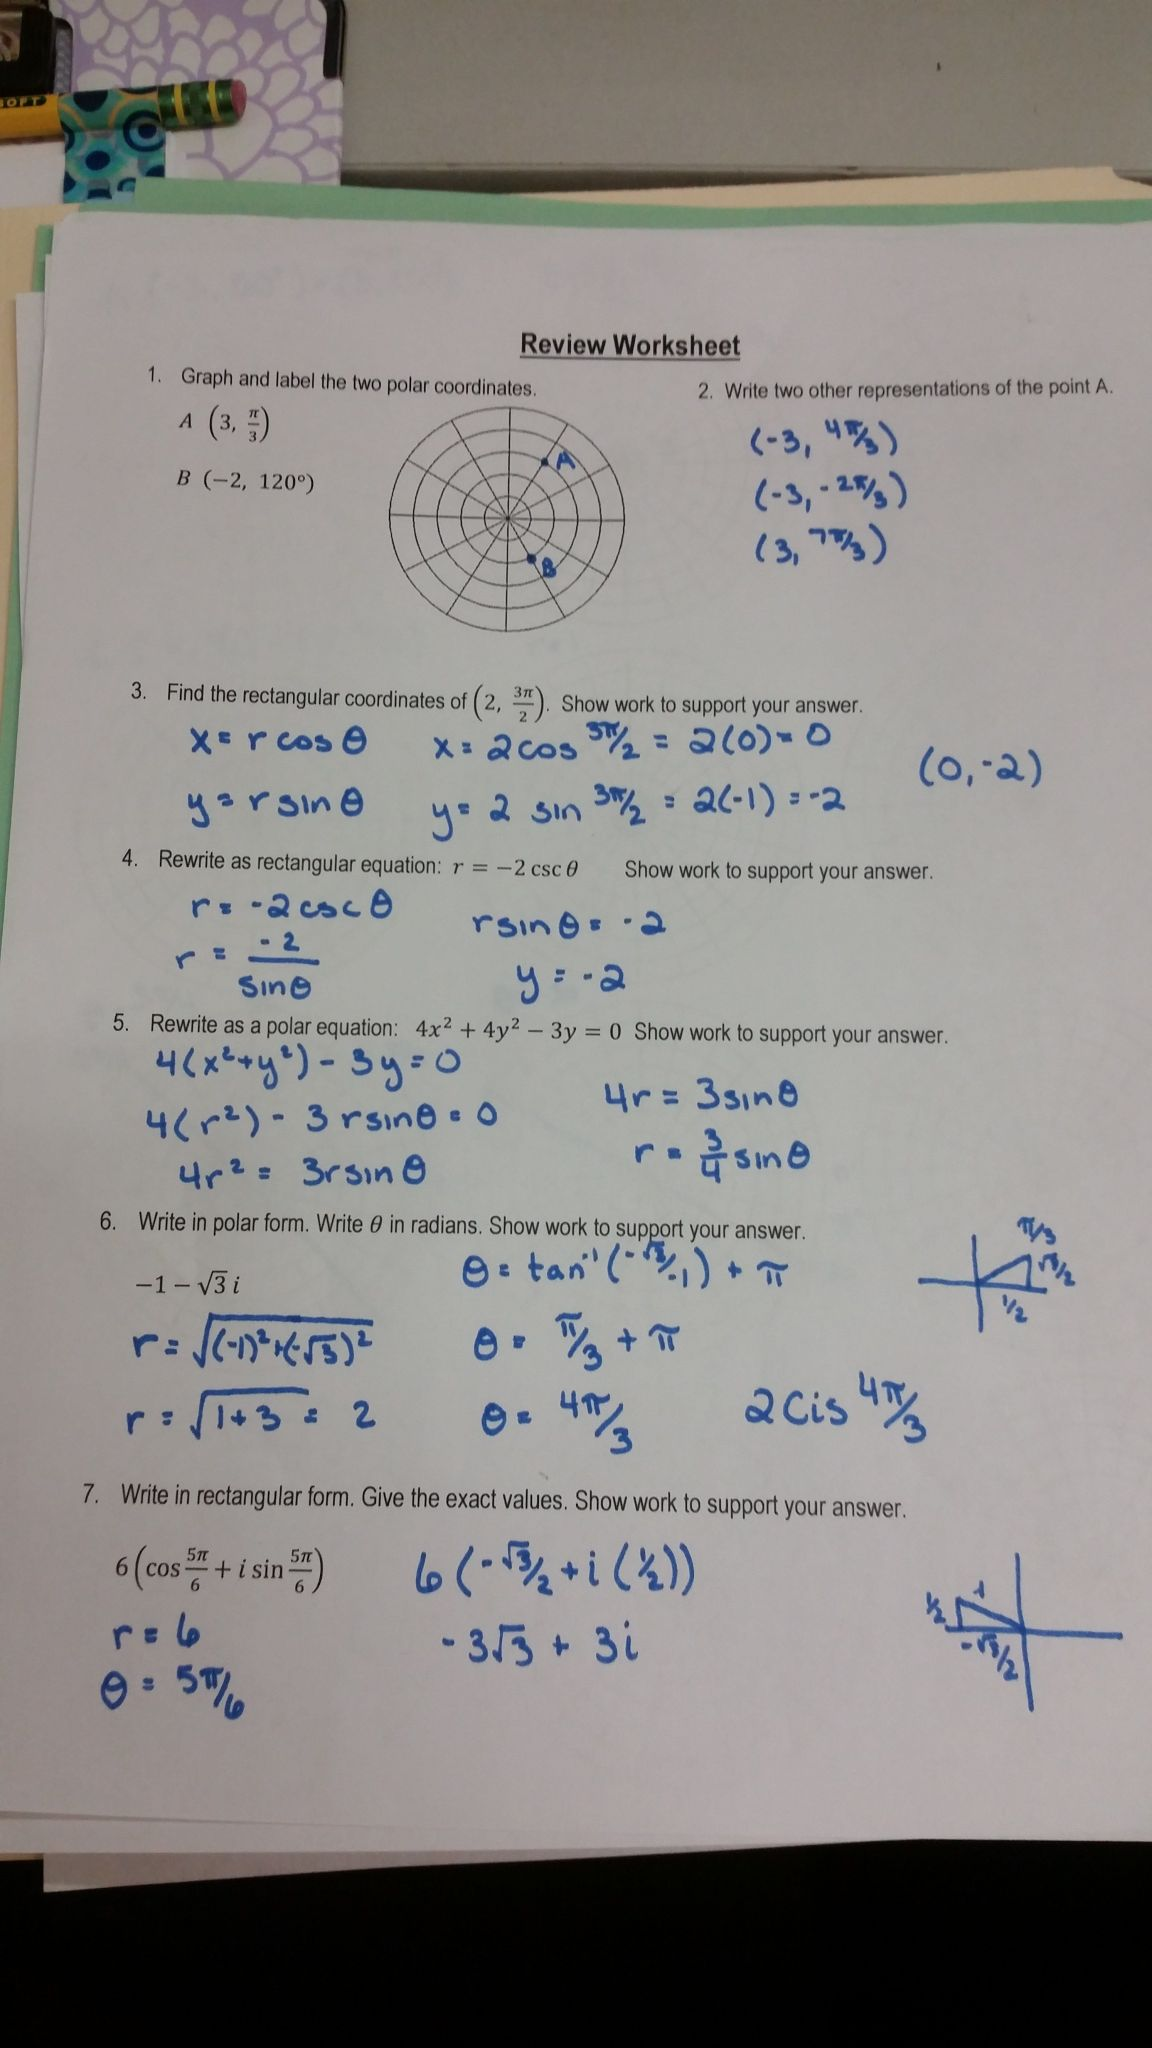 Practice Worksheet Solving Systems With Matrices Answers